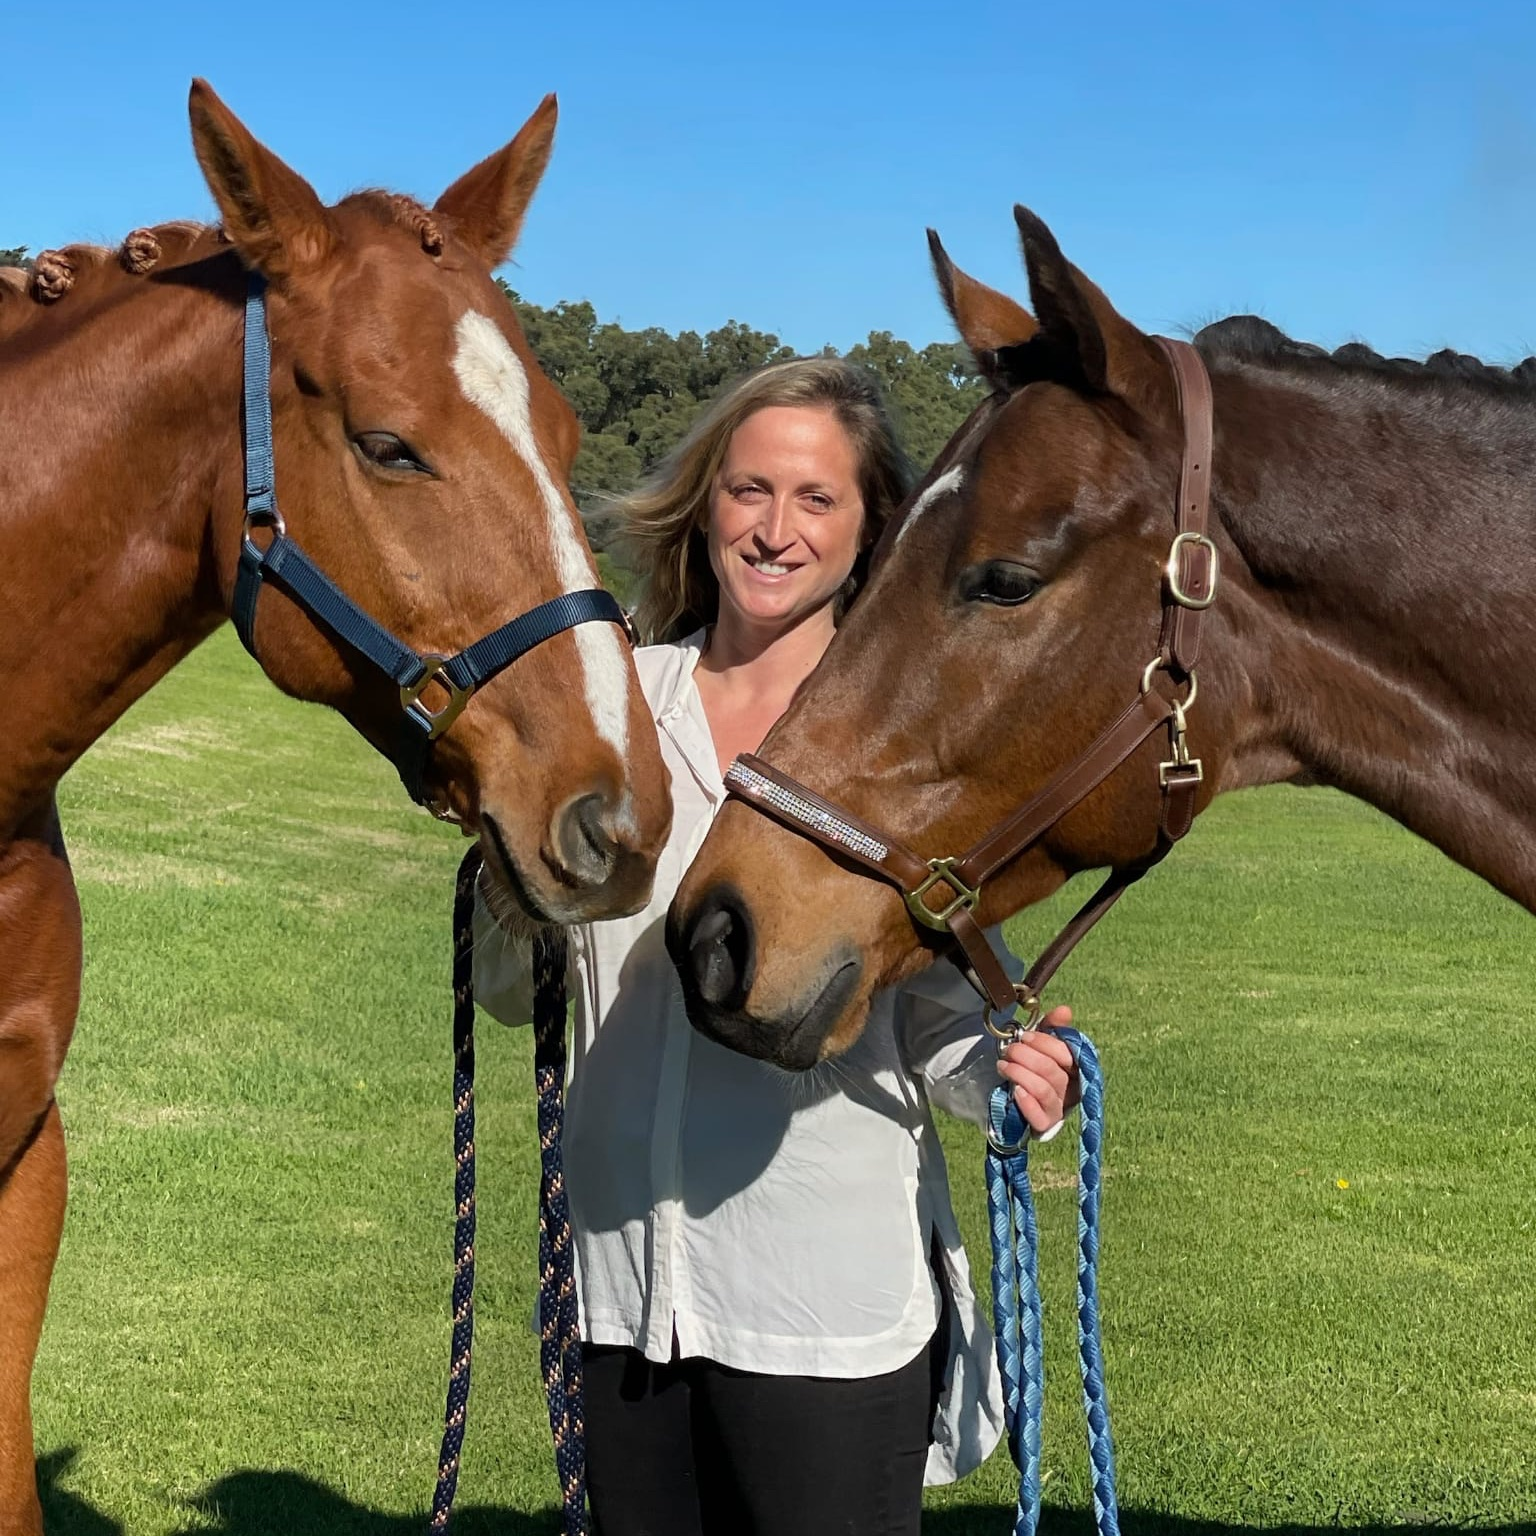 Joanna Paterson next to horse eating